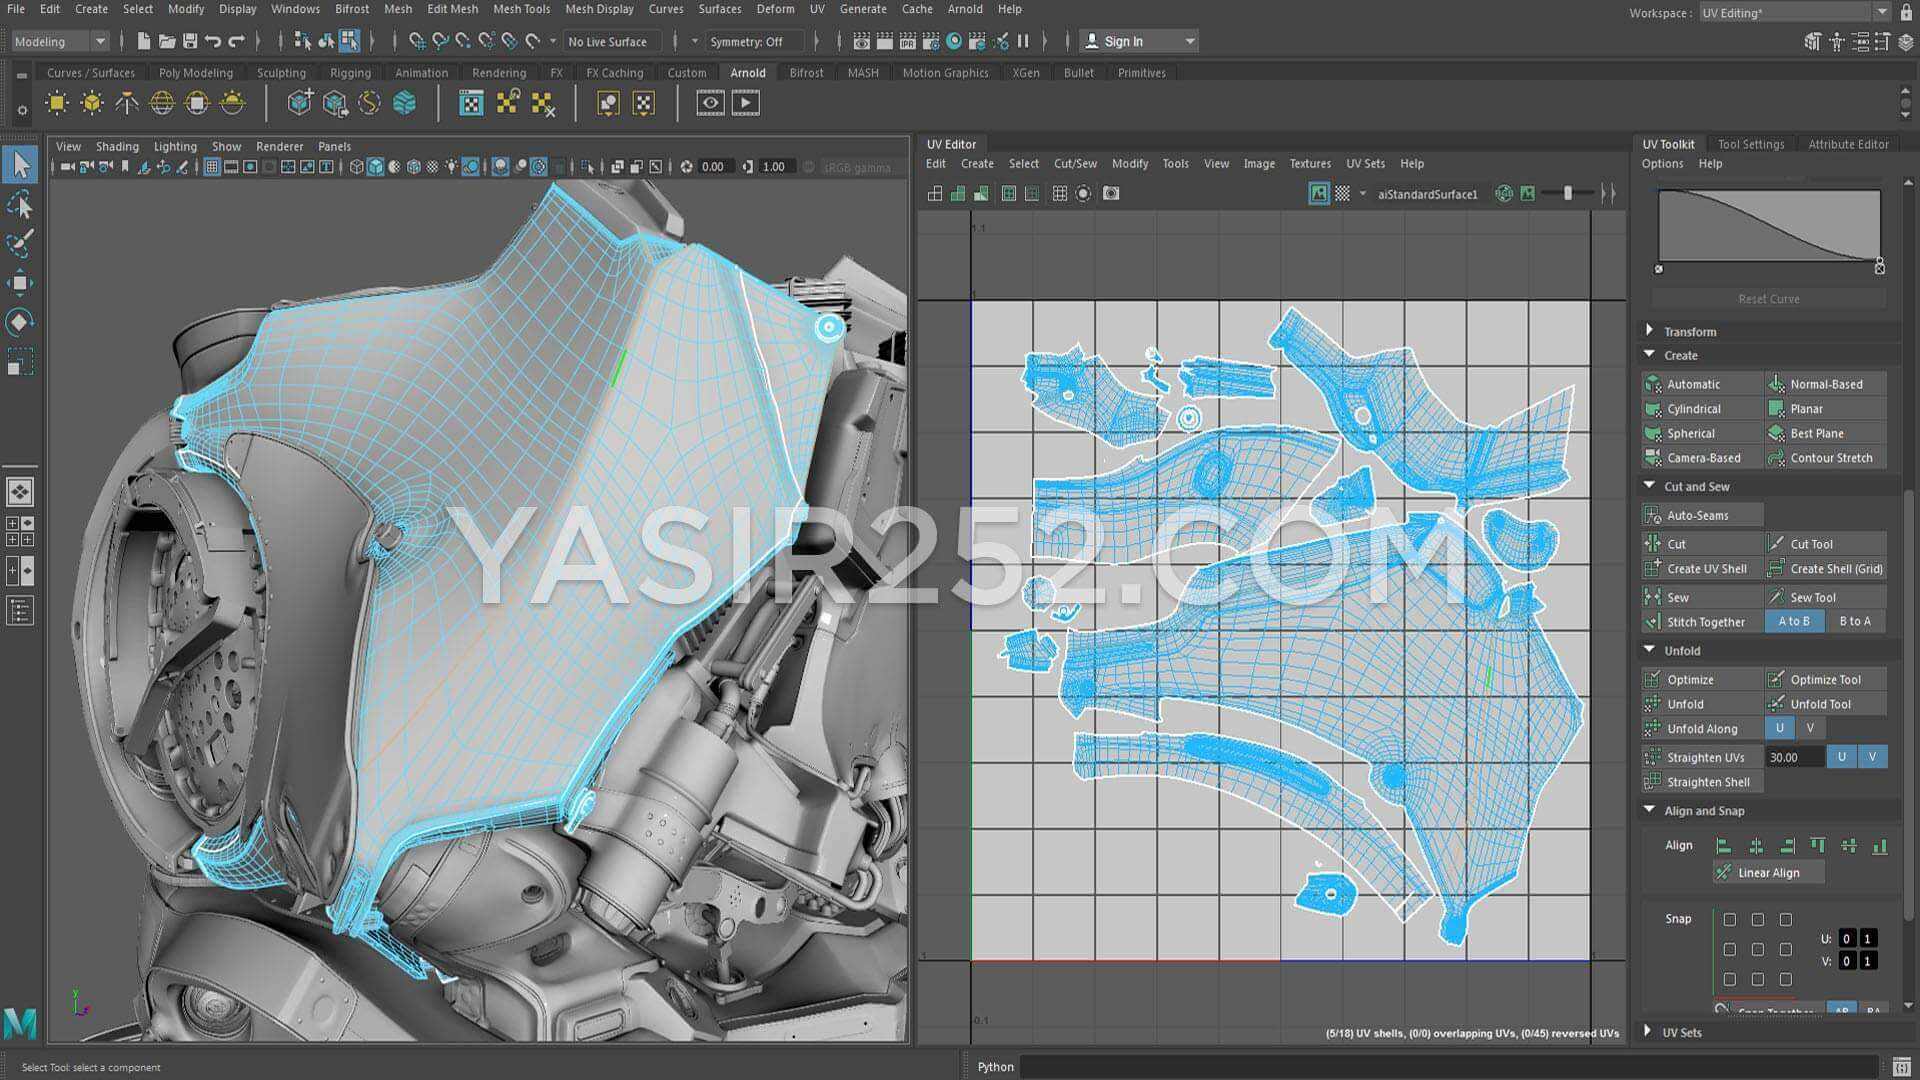 Download Autodesk Maya 2018 mac full version